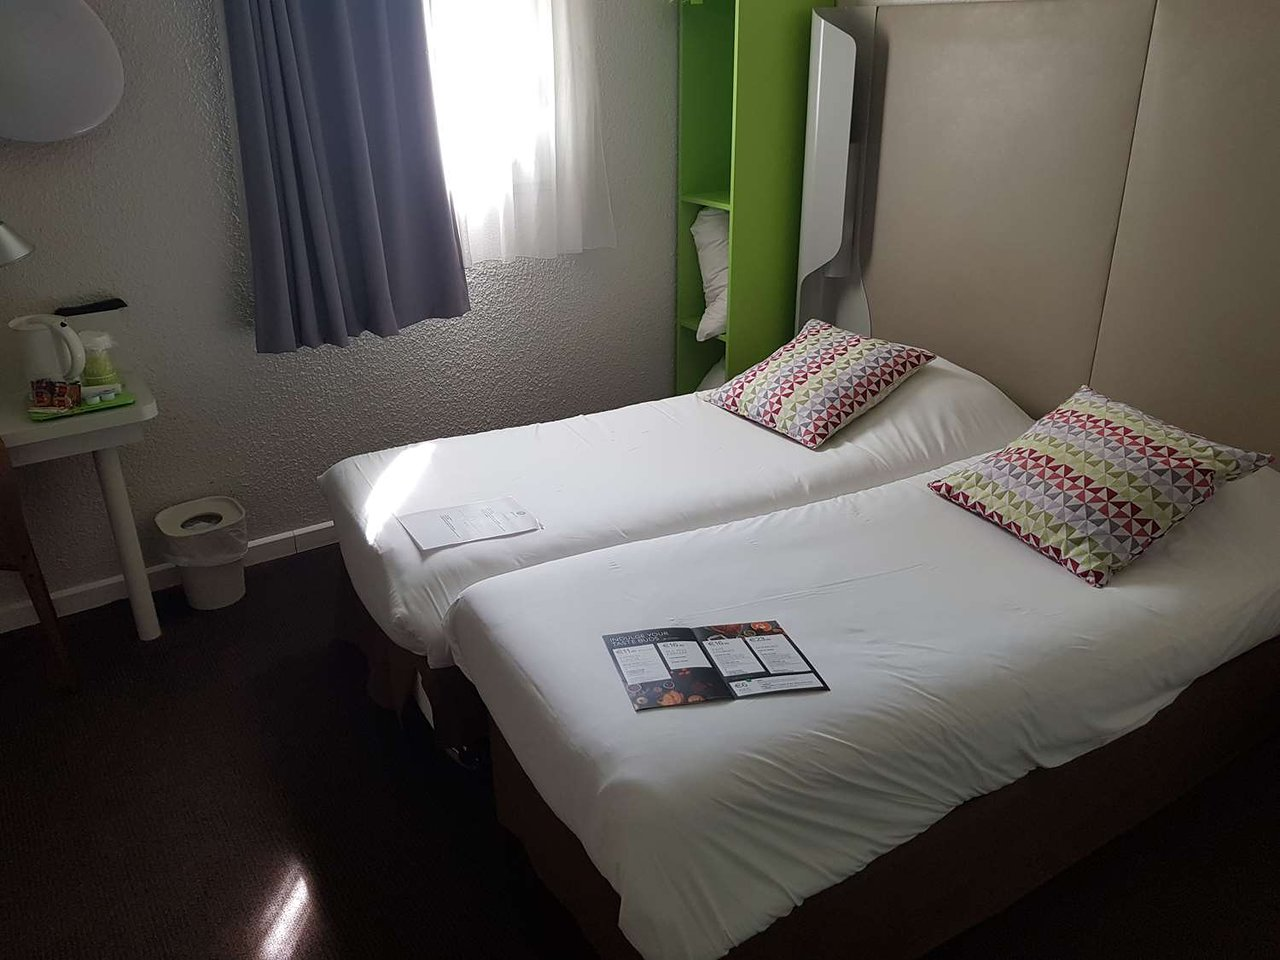 But Portes Les Valence Génial Campanile Valence nord $52 $̶7̶2̶ Prices & Hotel Reviews Of 31 Luxe but Portes Les Valence